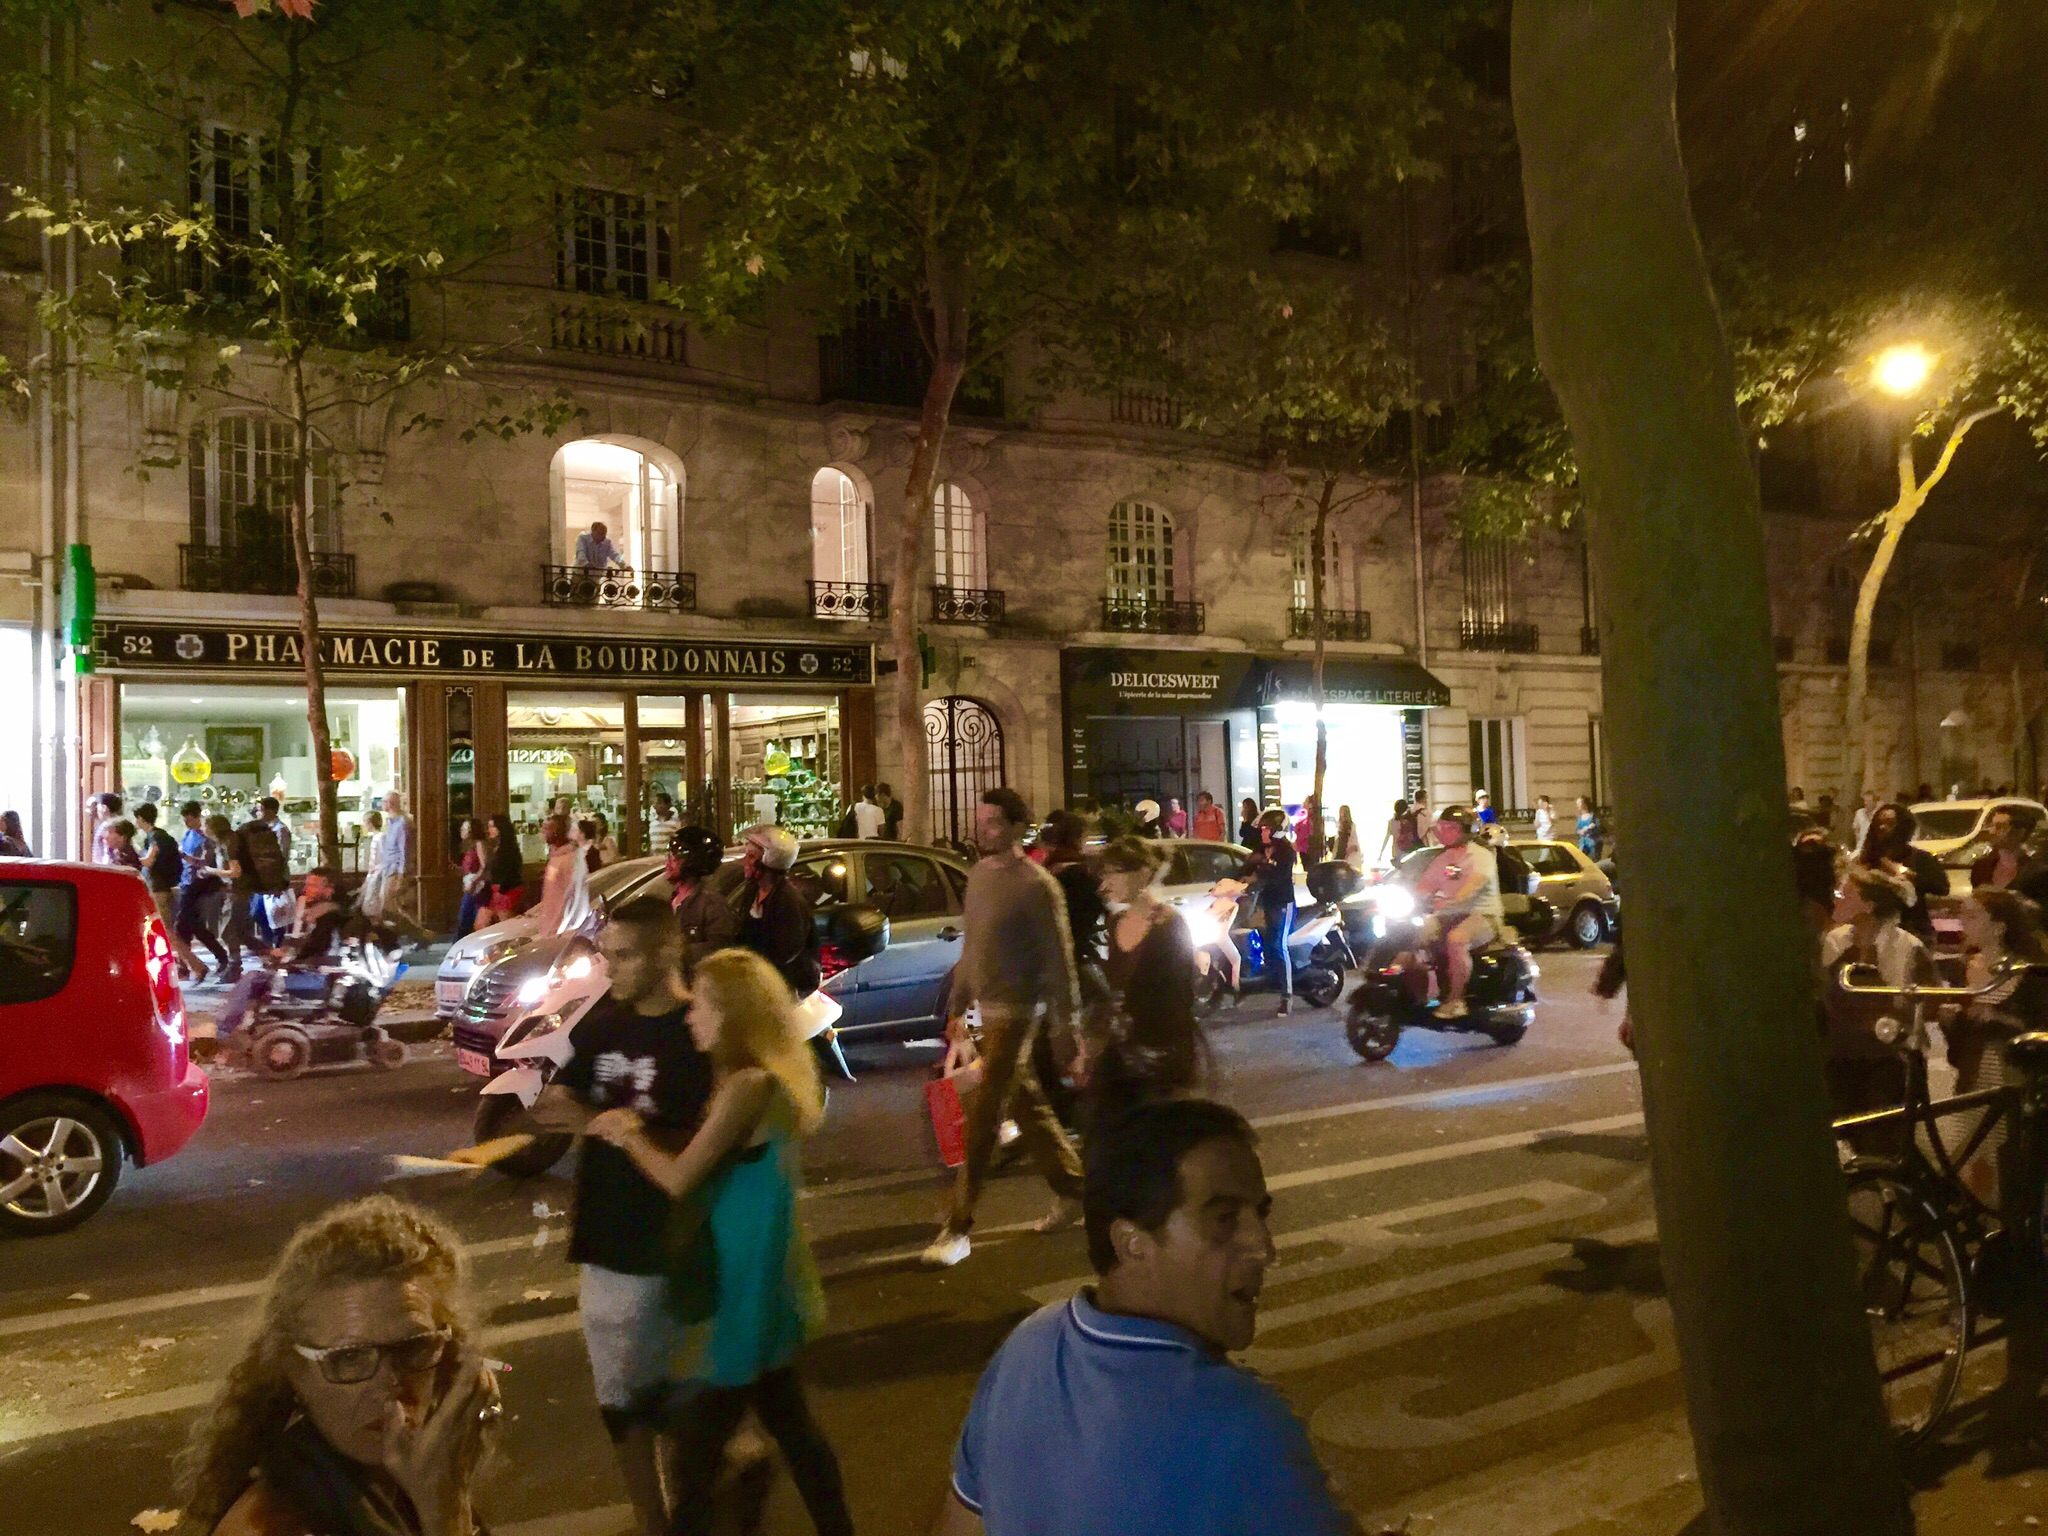 The crowd in the street blocks and blocks away from the Champ de Mars after the fireworks show